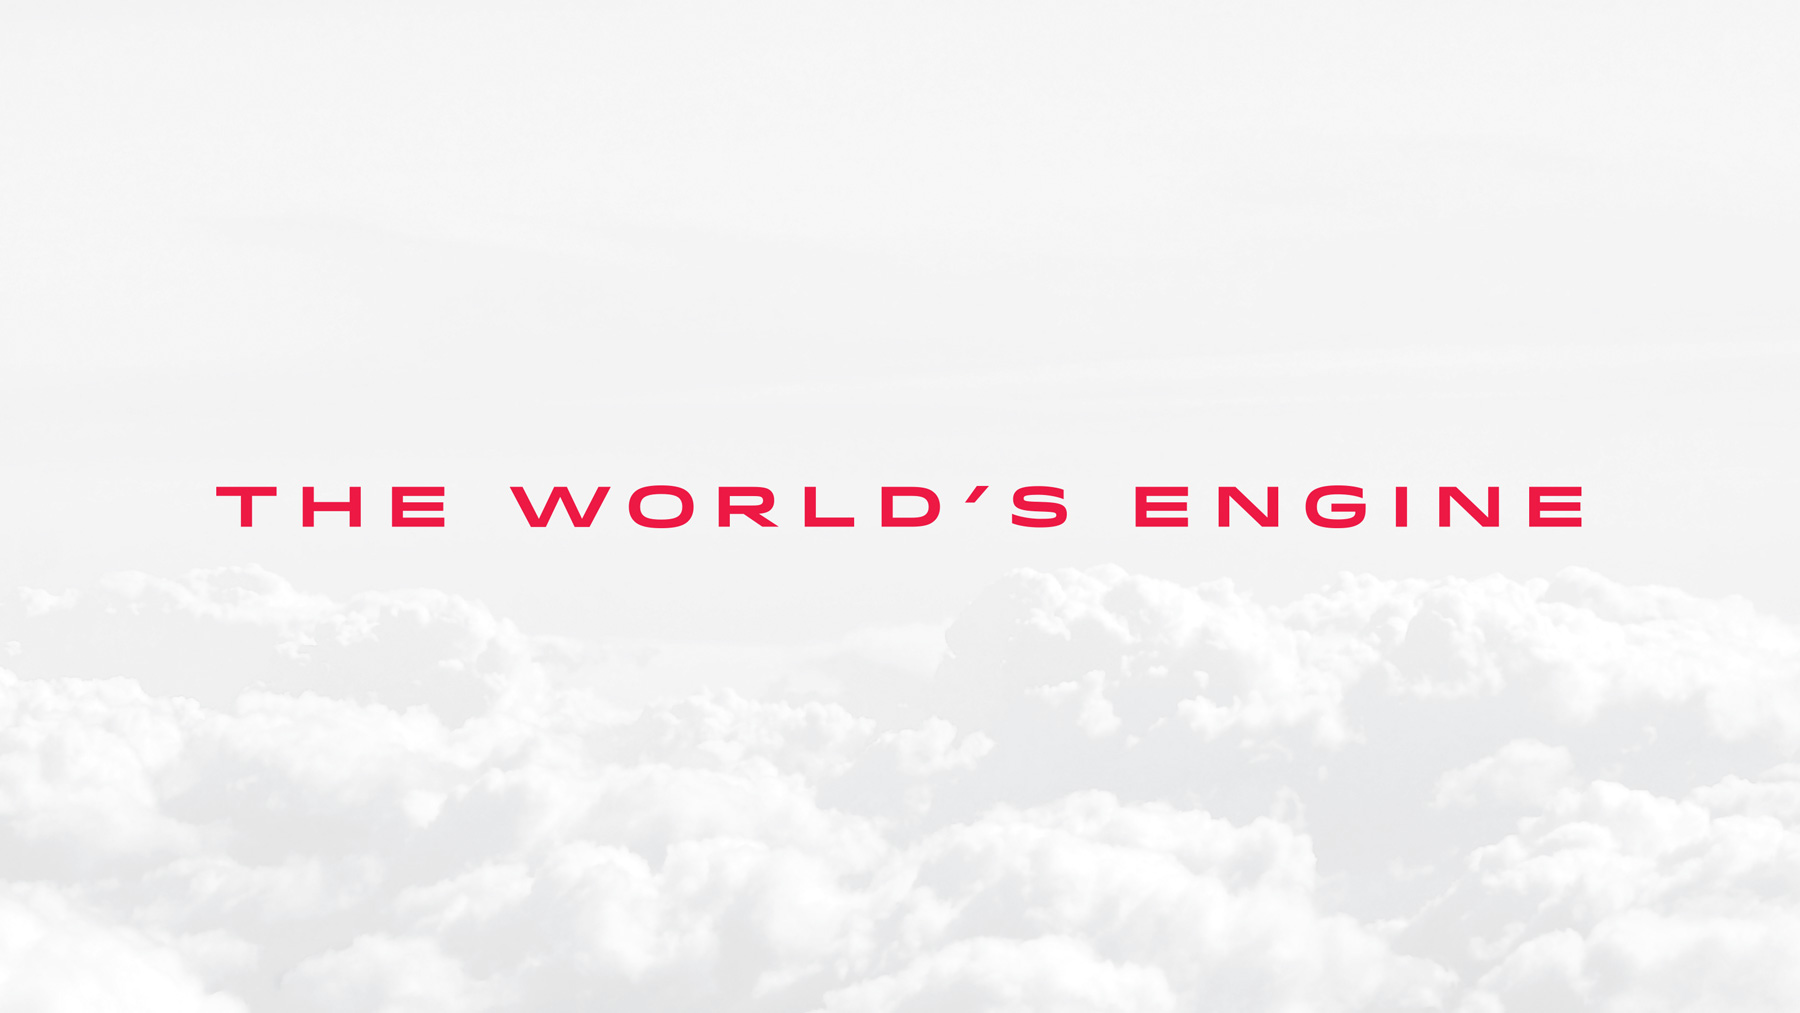 Aircraft engine manufacturer tagline